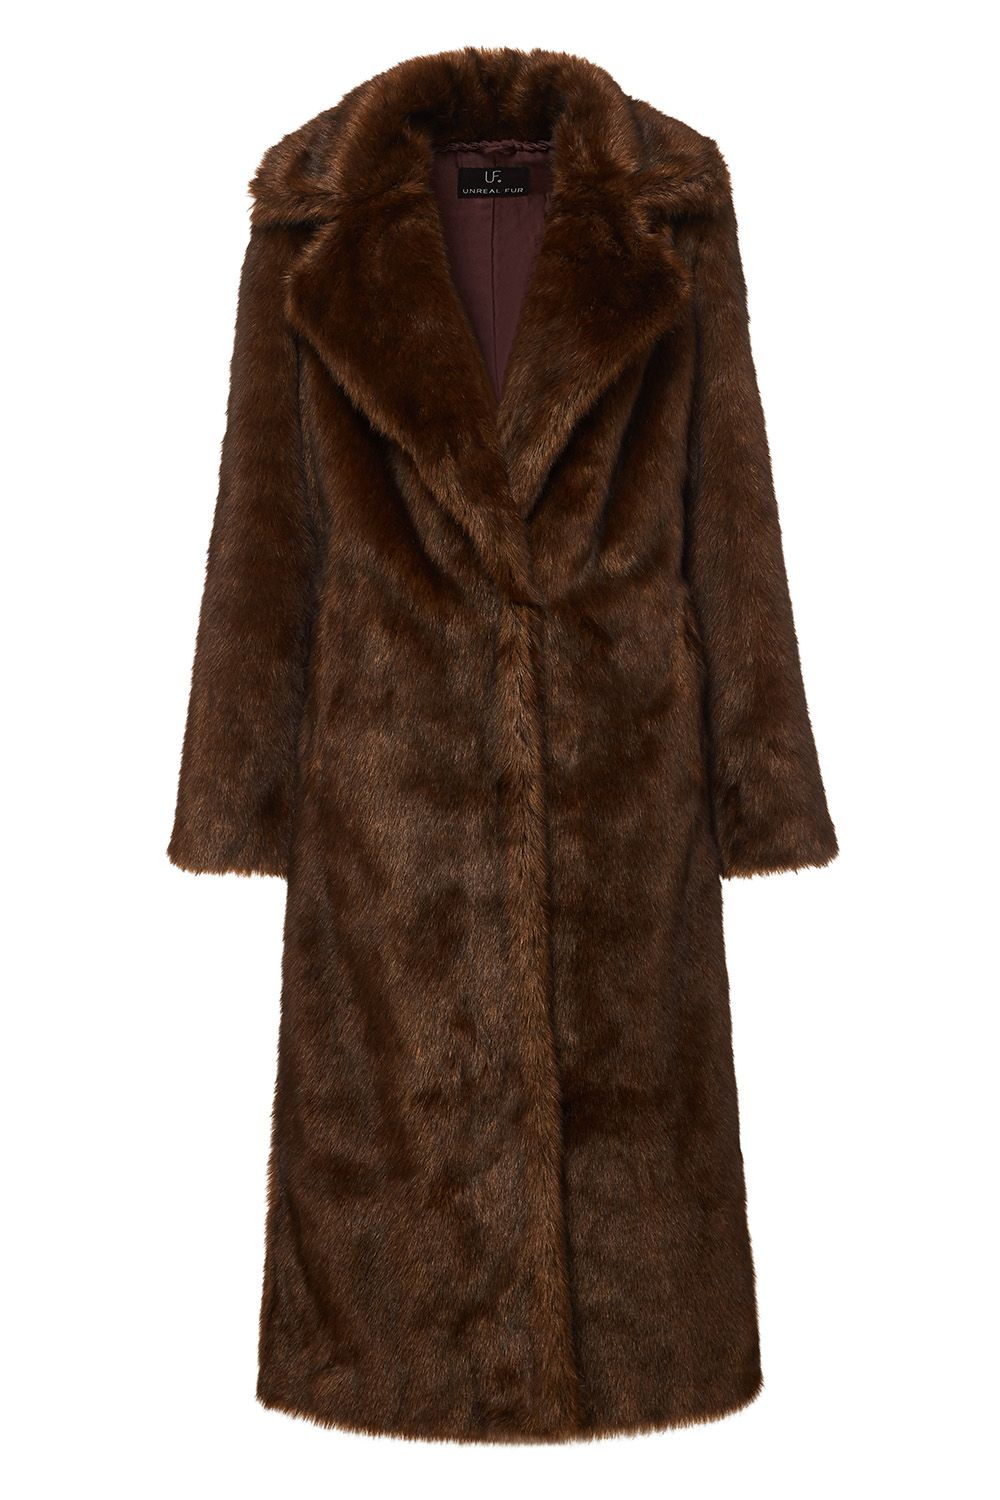 Long Mac Coat in Chestnut